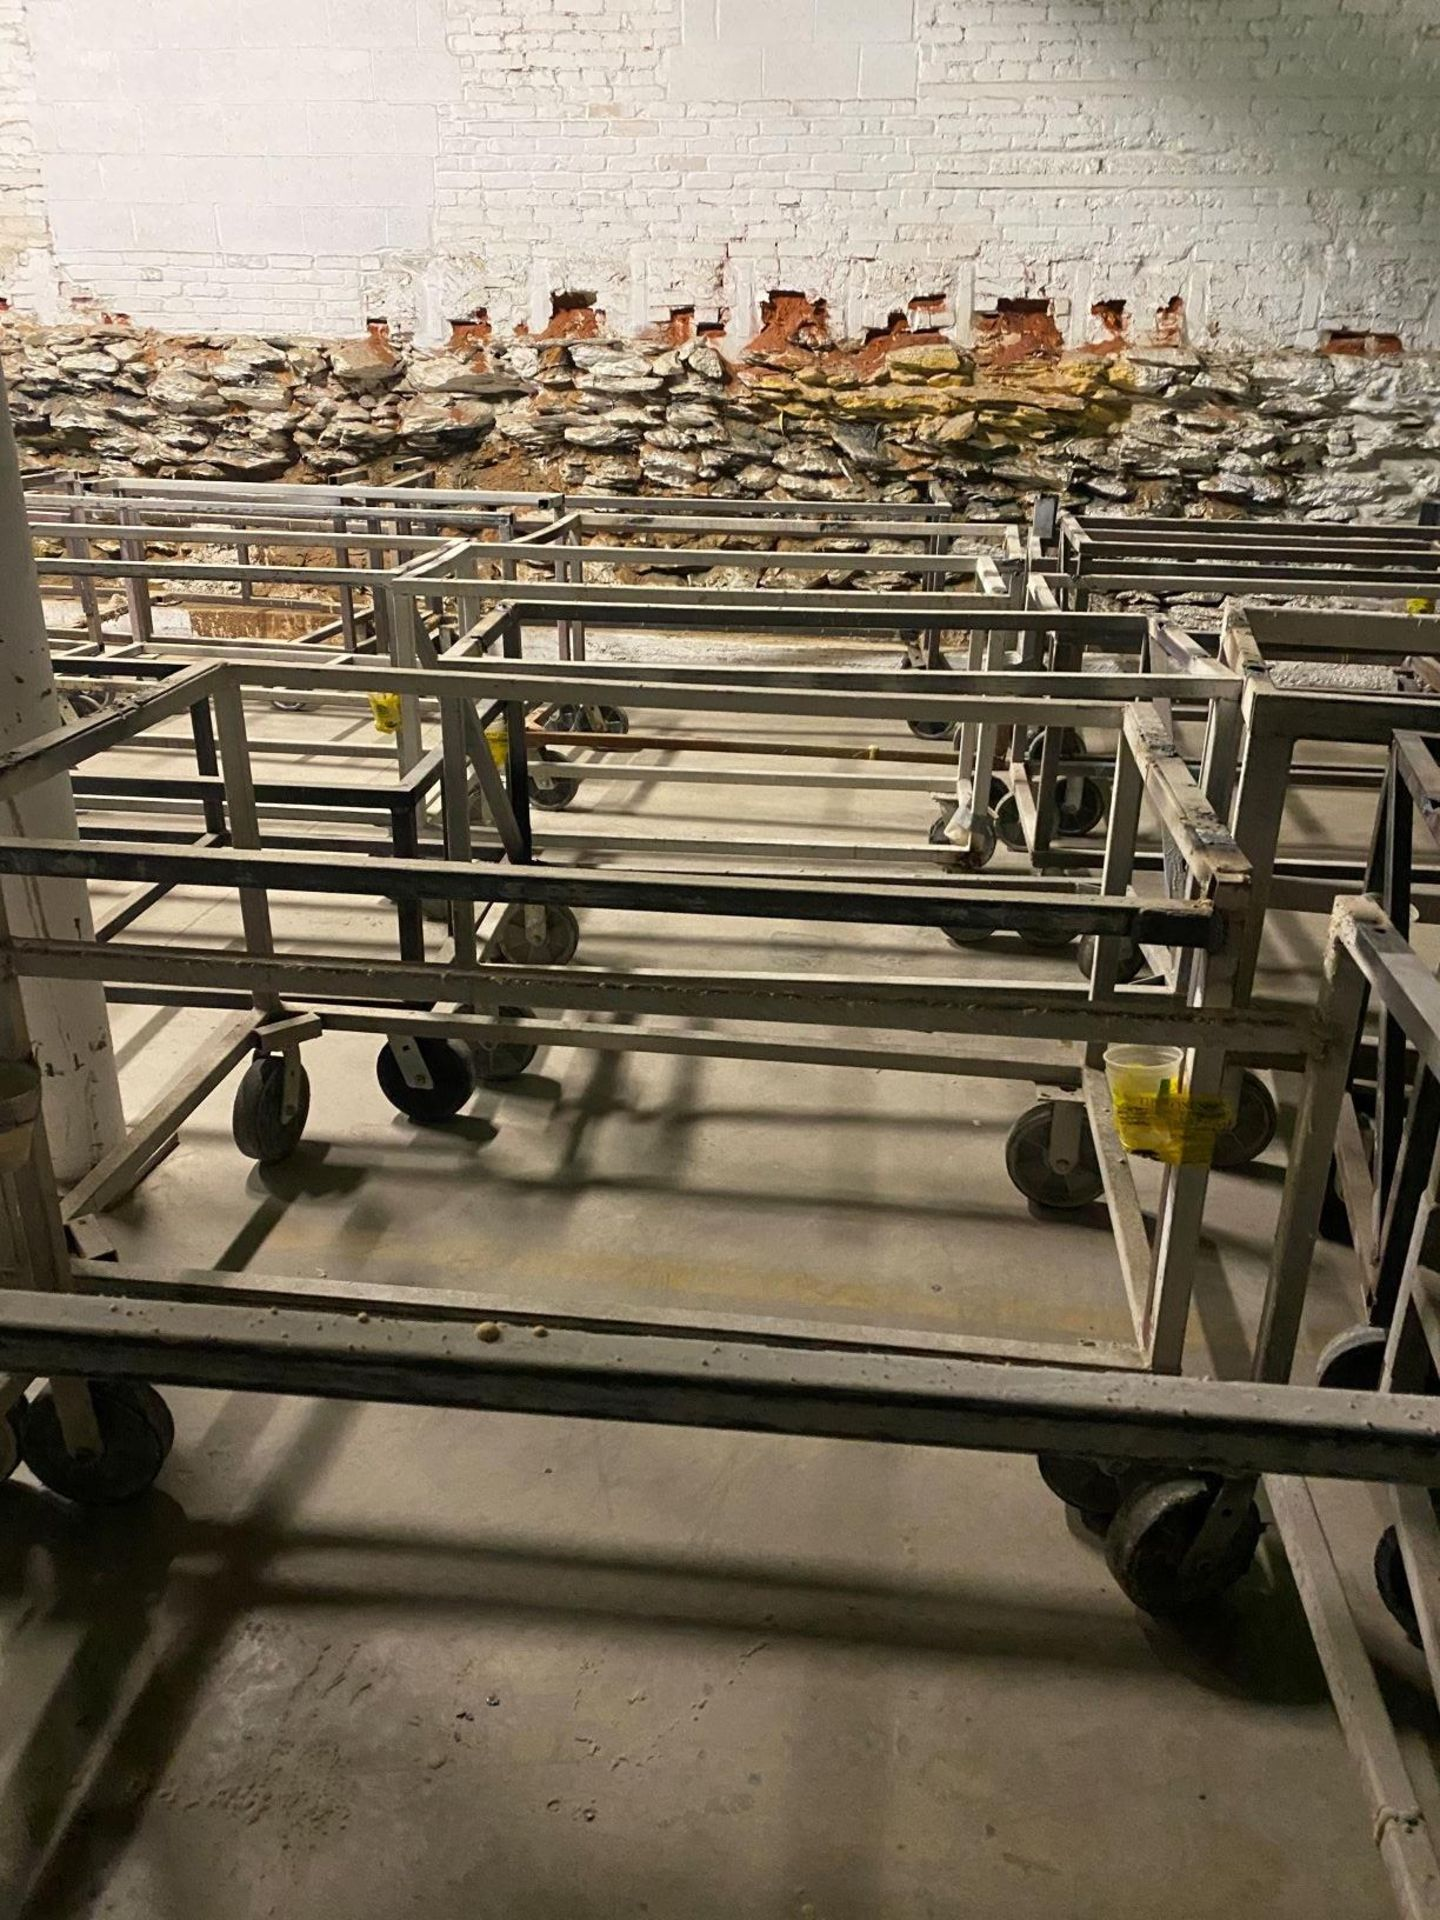 Heavy Duty Rolling Carts Various sizes Lot of approx. 25 - Image 2 of 6